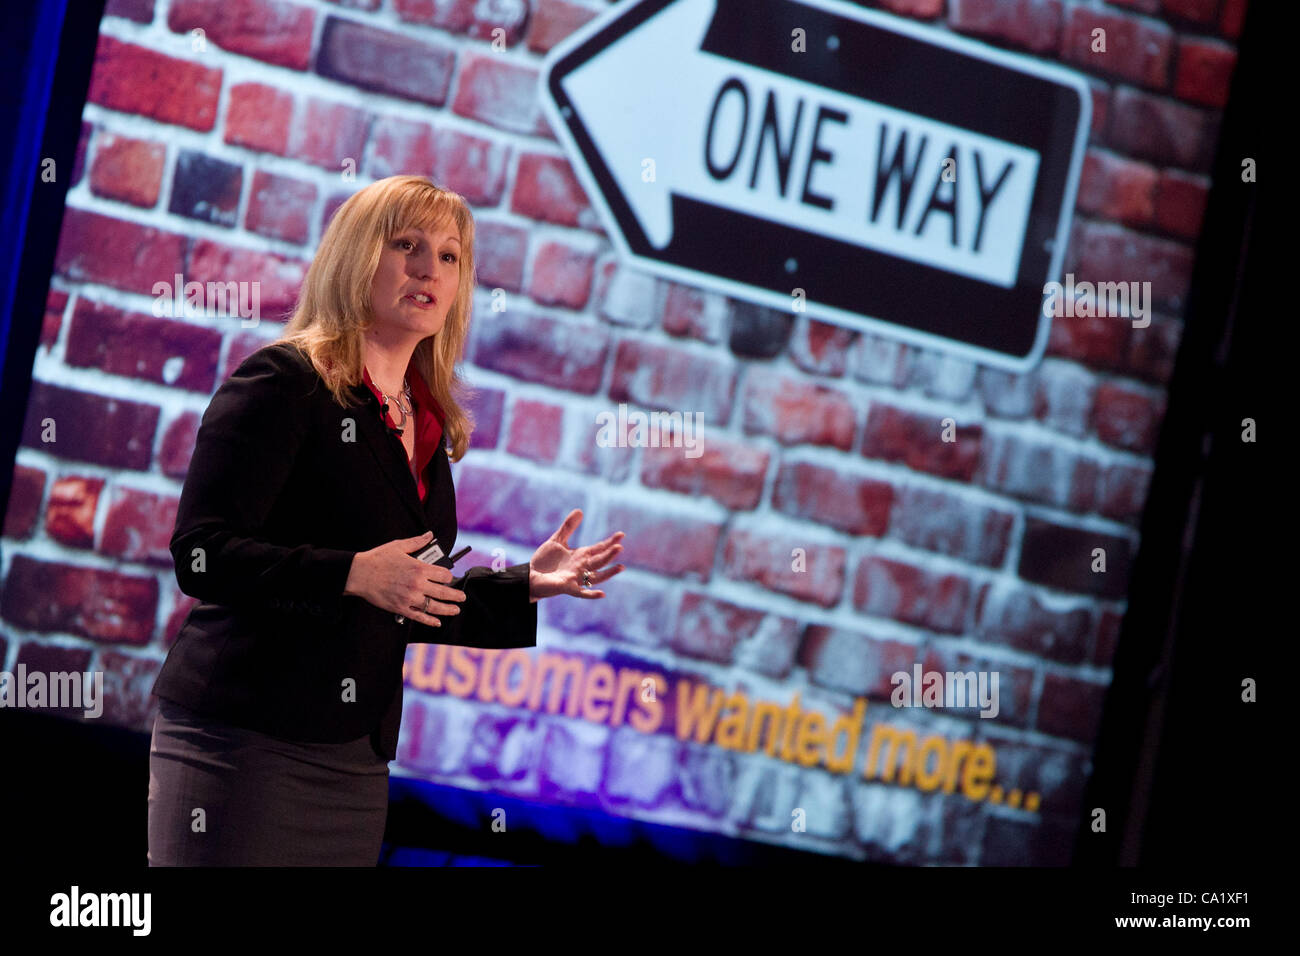 March 21, 2012 - Toronto, Canada - 'From Community to Kinship' presentation by Katrina Klier of Microsoft - Stock Image